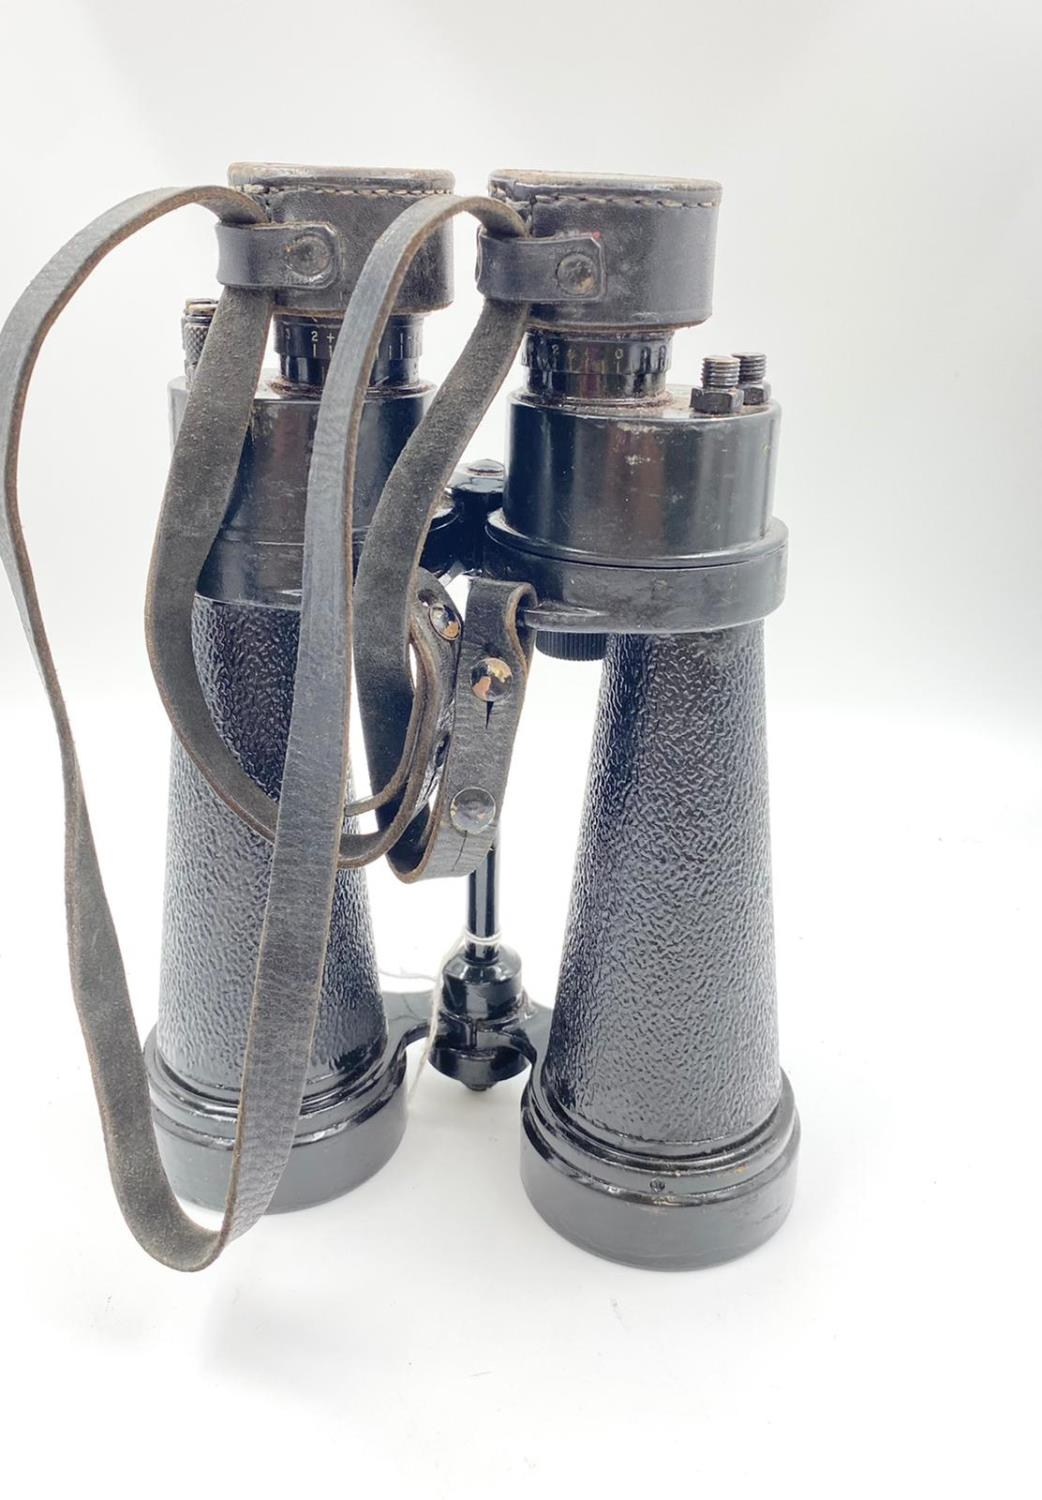 1942 Dated Barr & Stroud Royal Navy Submarine Hunting Binoculars. With anti-glare filters. - Image 2 of 5